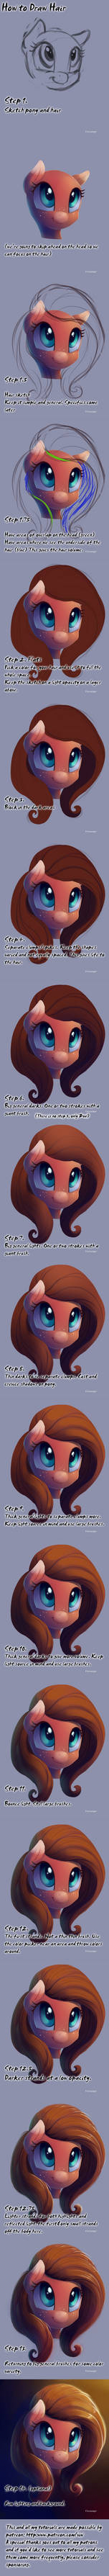 How to draw hair. Pony style.